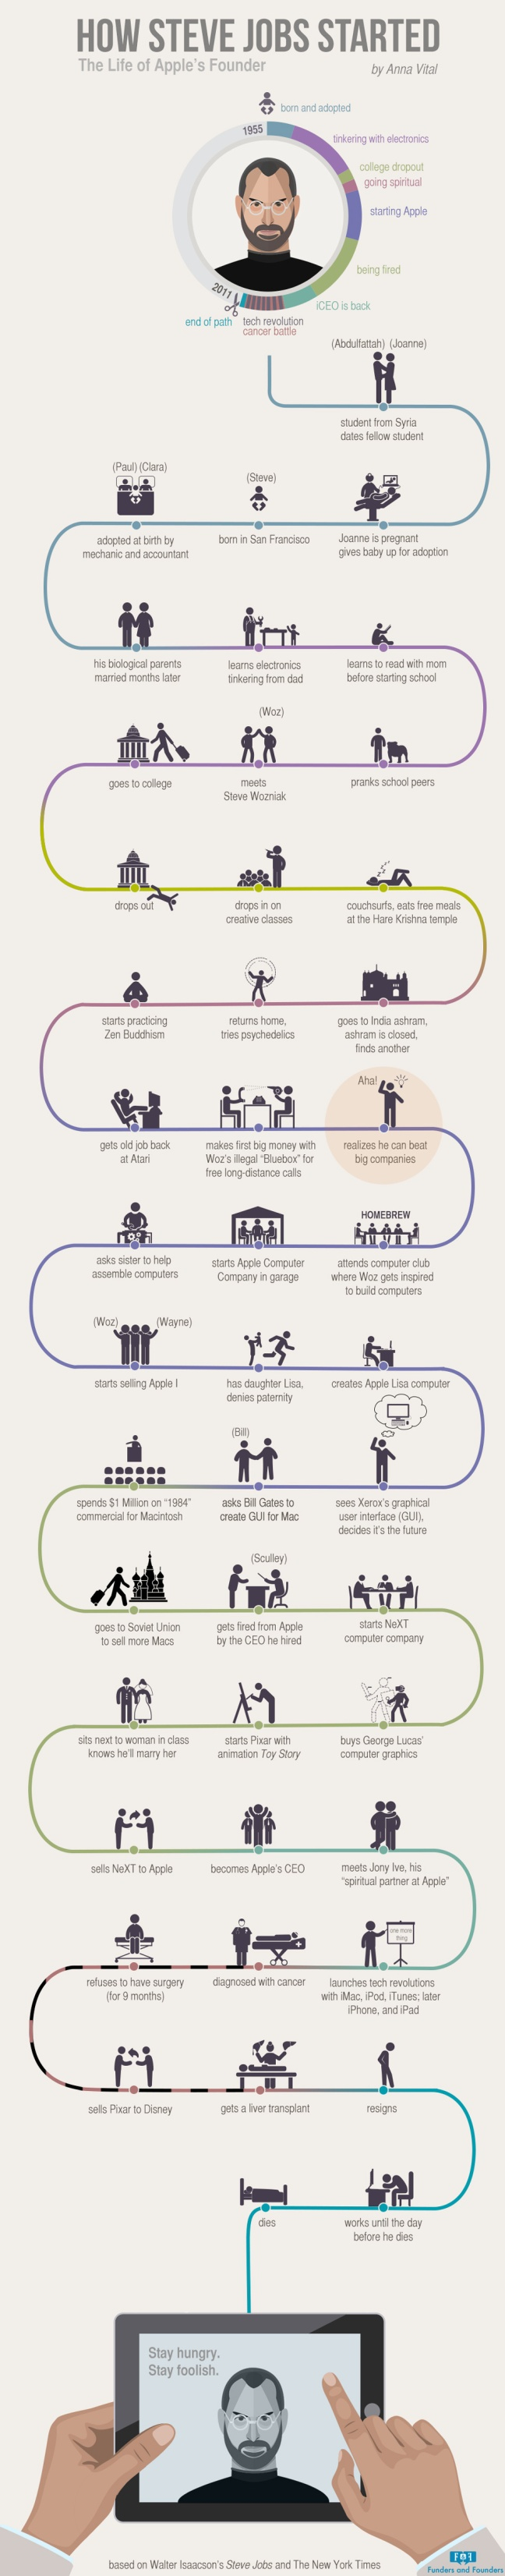 How Steve Jobs Started – Infographic